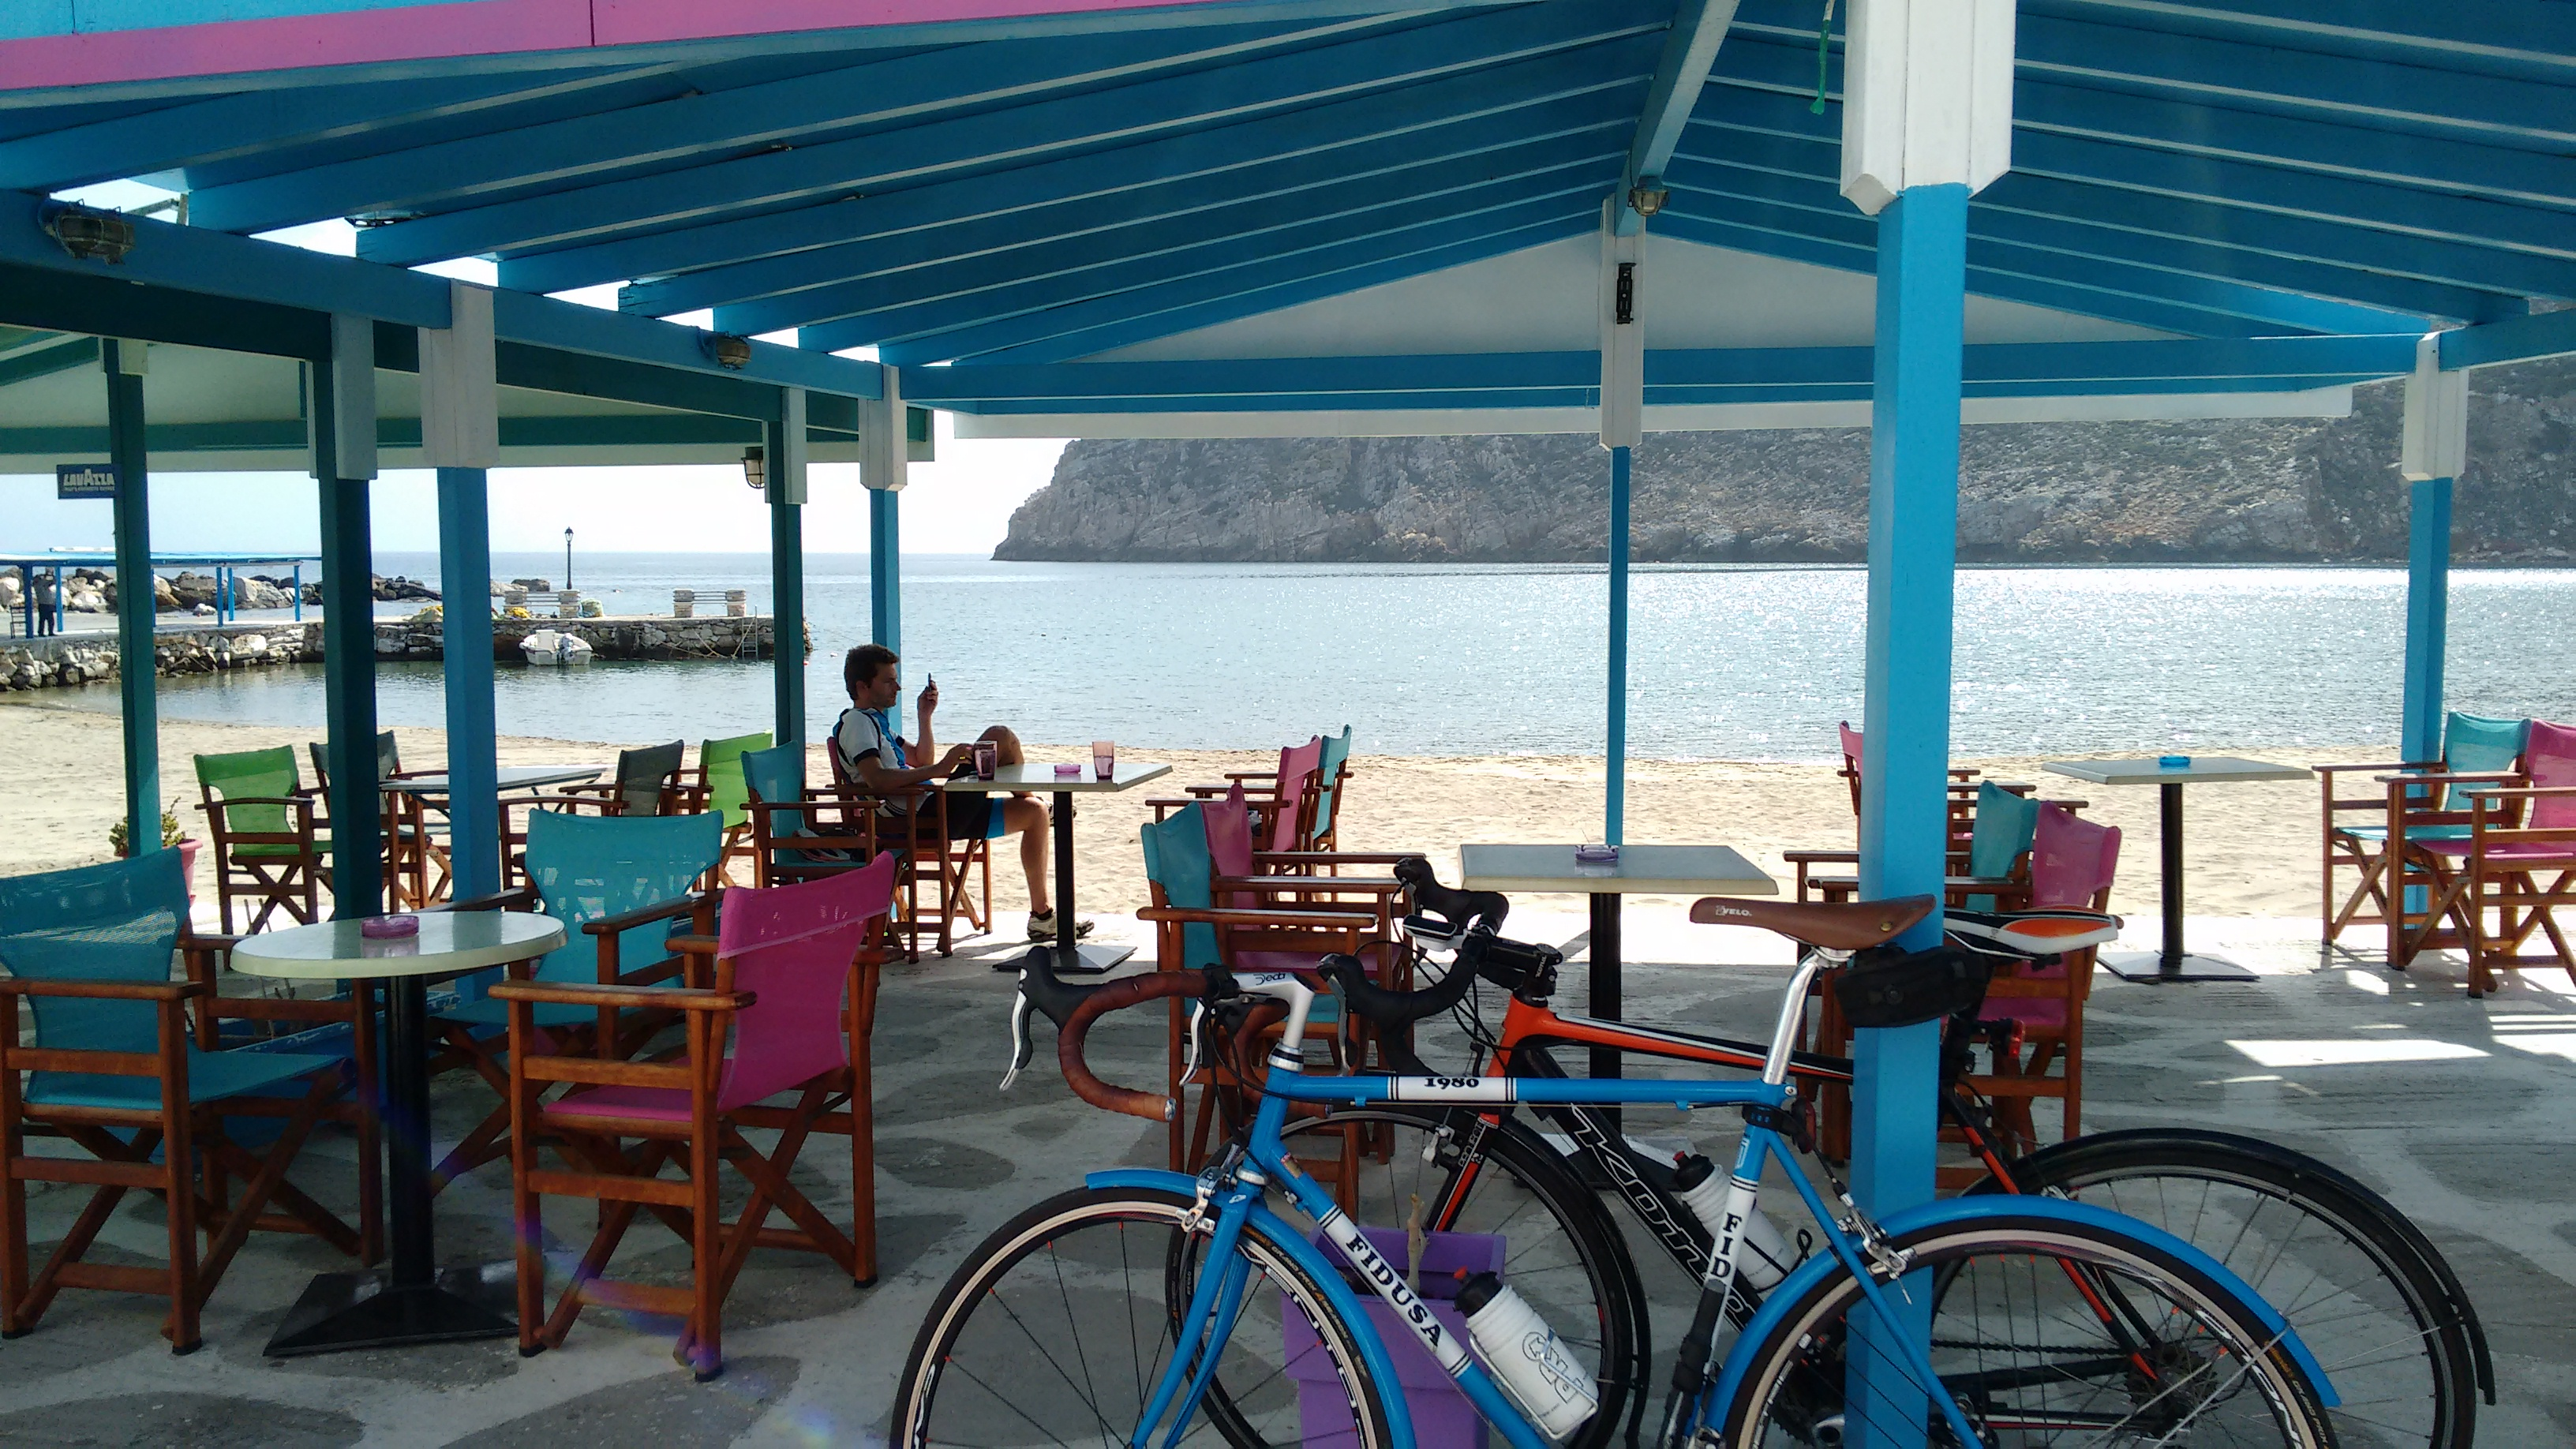 The cafe at Apollonas, where we stop for coffee